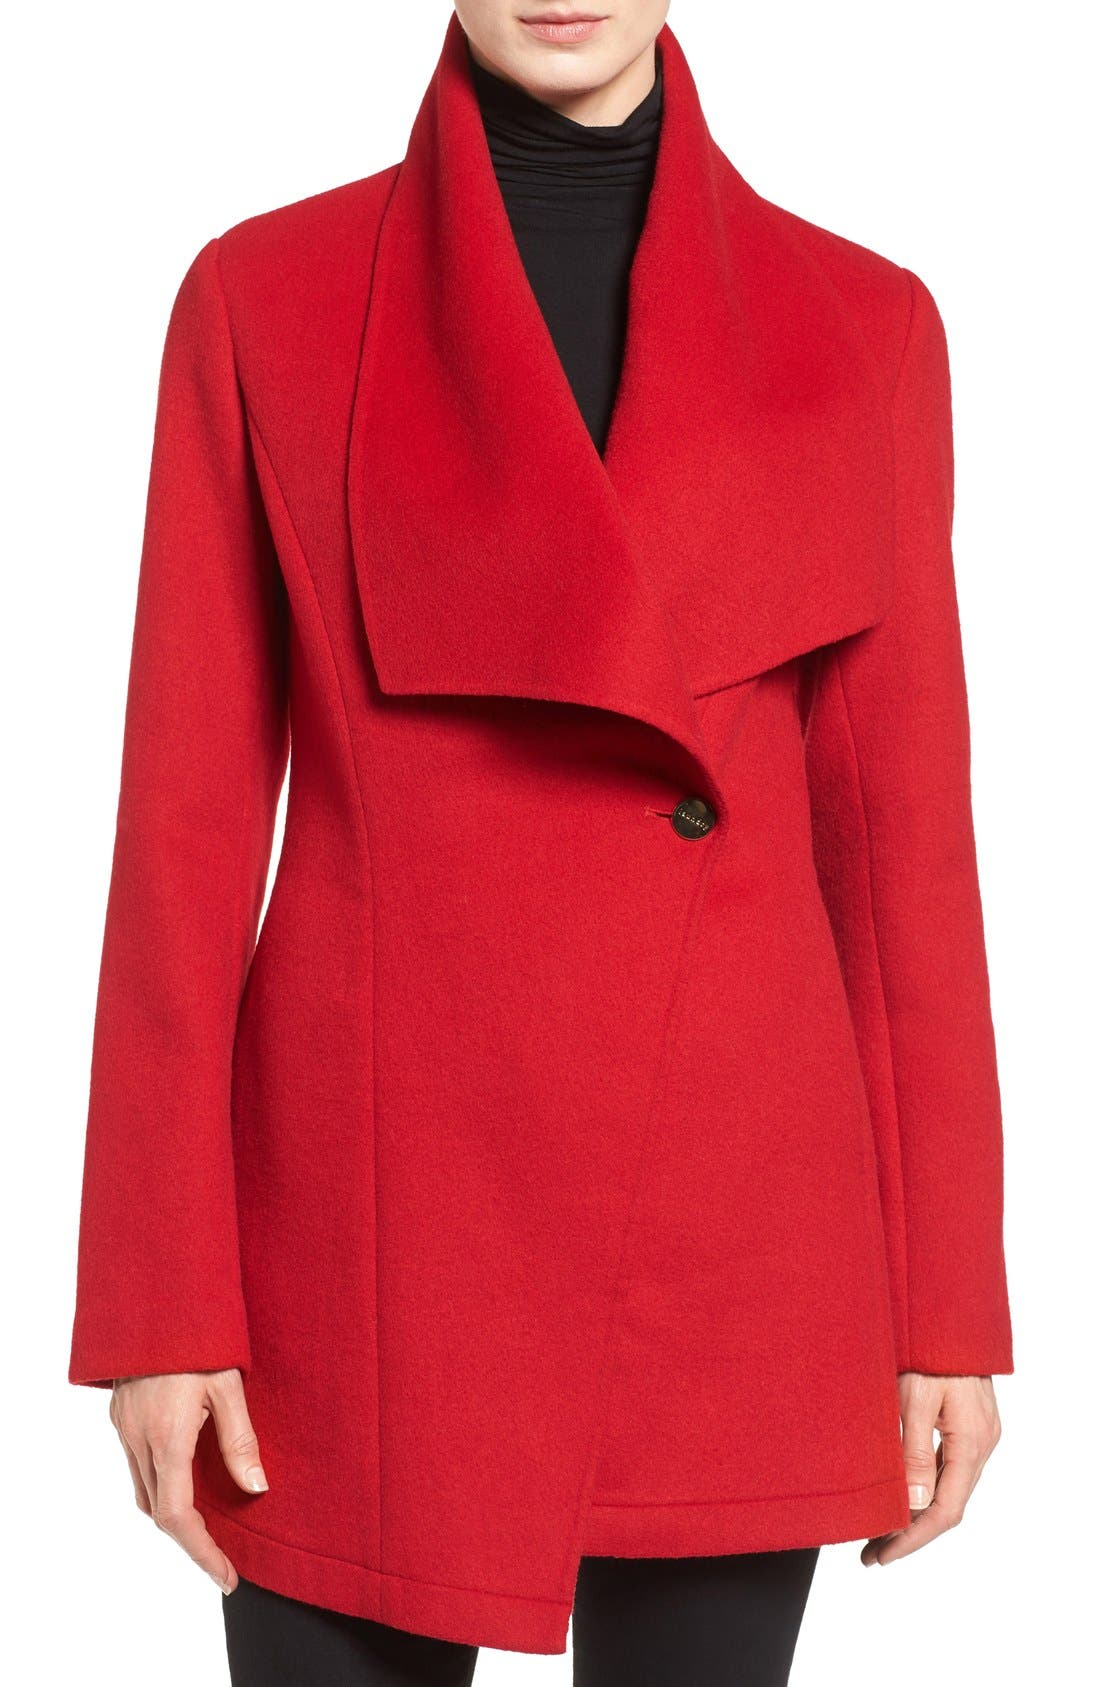 Alternate Image 1 Selected - Laundry by Shelli Segal Double Face Drape Collar Coat